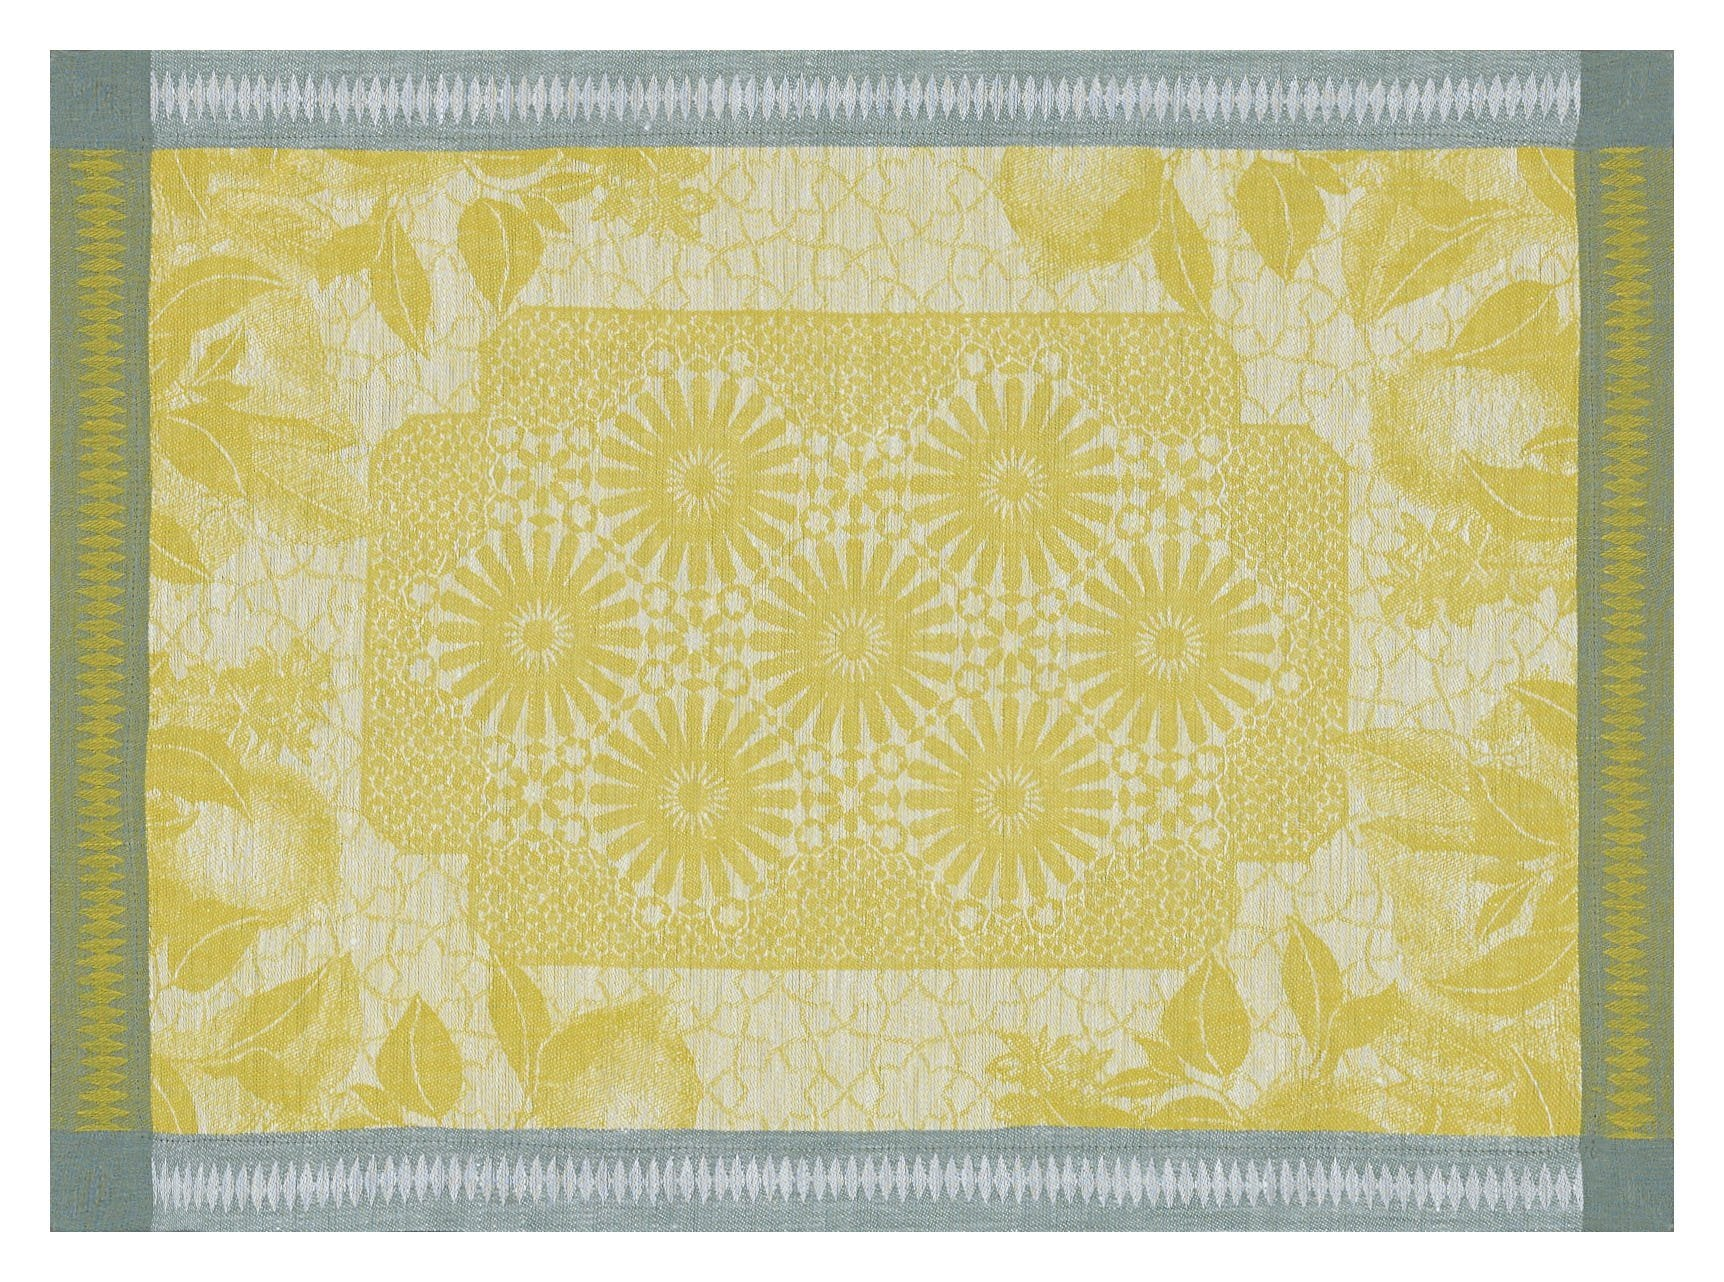 Le Jacquard Français Table Linen Jardin D'Orient Yellow Fig Linens placemat